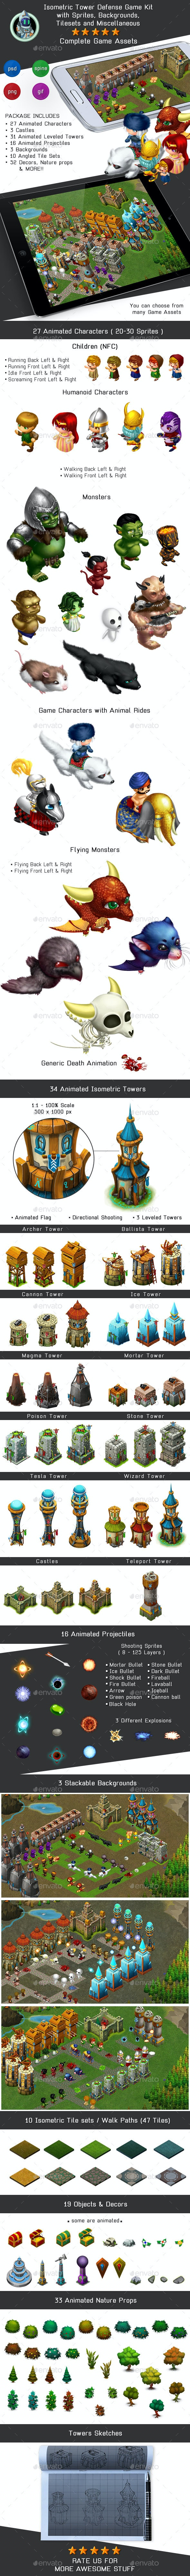 Isometric Tower Defense Game Kit Pack - Sprites, Backgrounds - Game Kits Game Assets